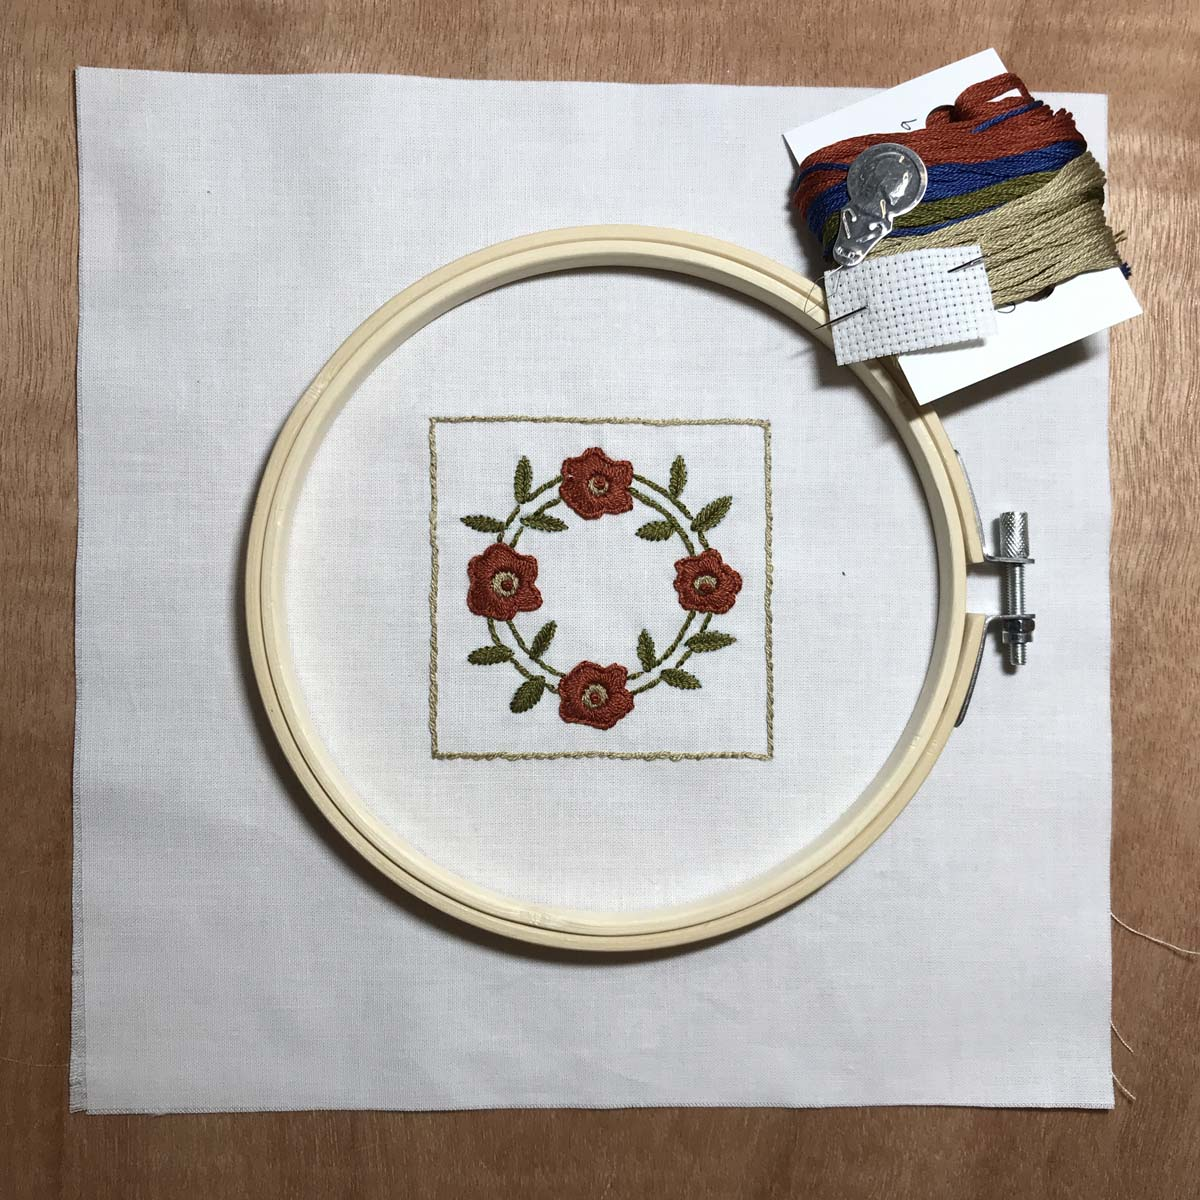 Miniature embroidered quilt block with hoop in the Rose Wreath pattern.